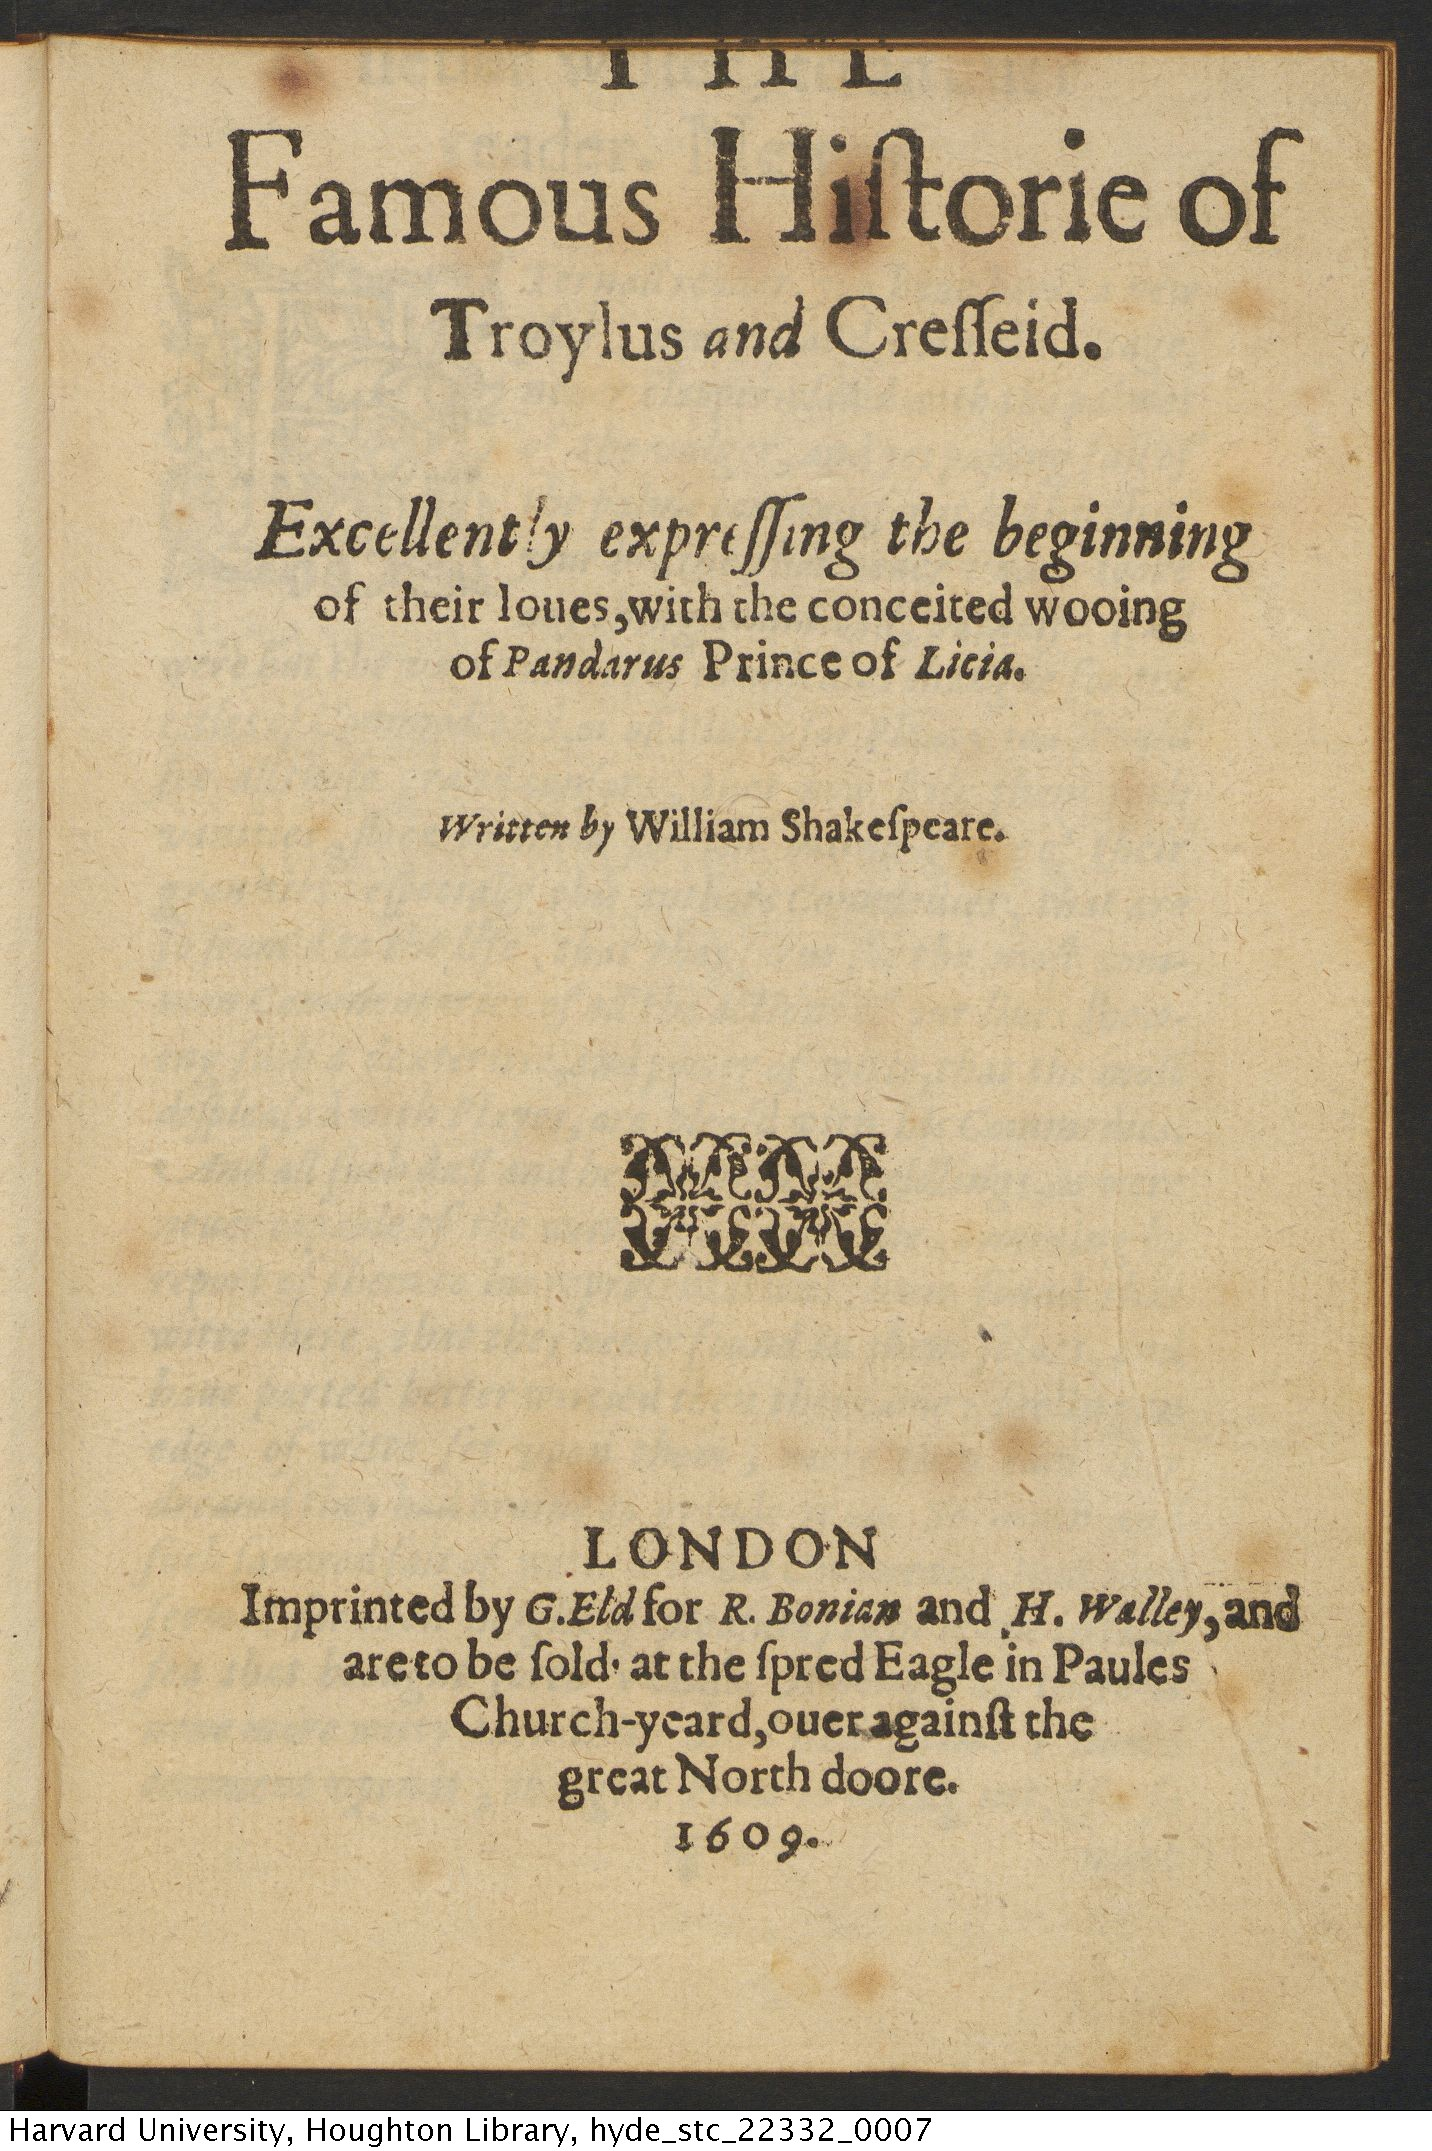 Shakespeare, William, 1564-1616. The famous historie of Troylus and Cresseid, 1609. STC 22332